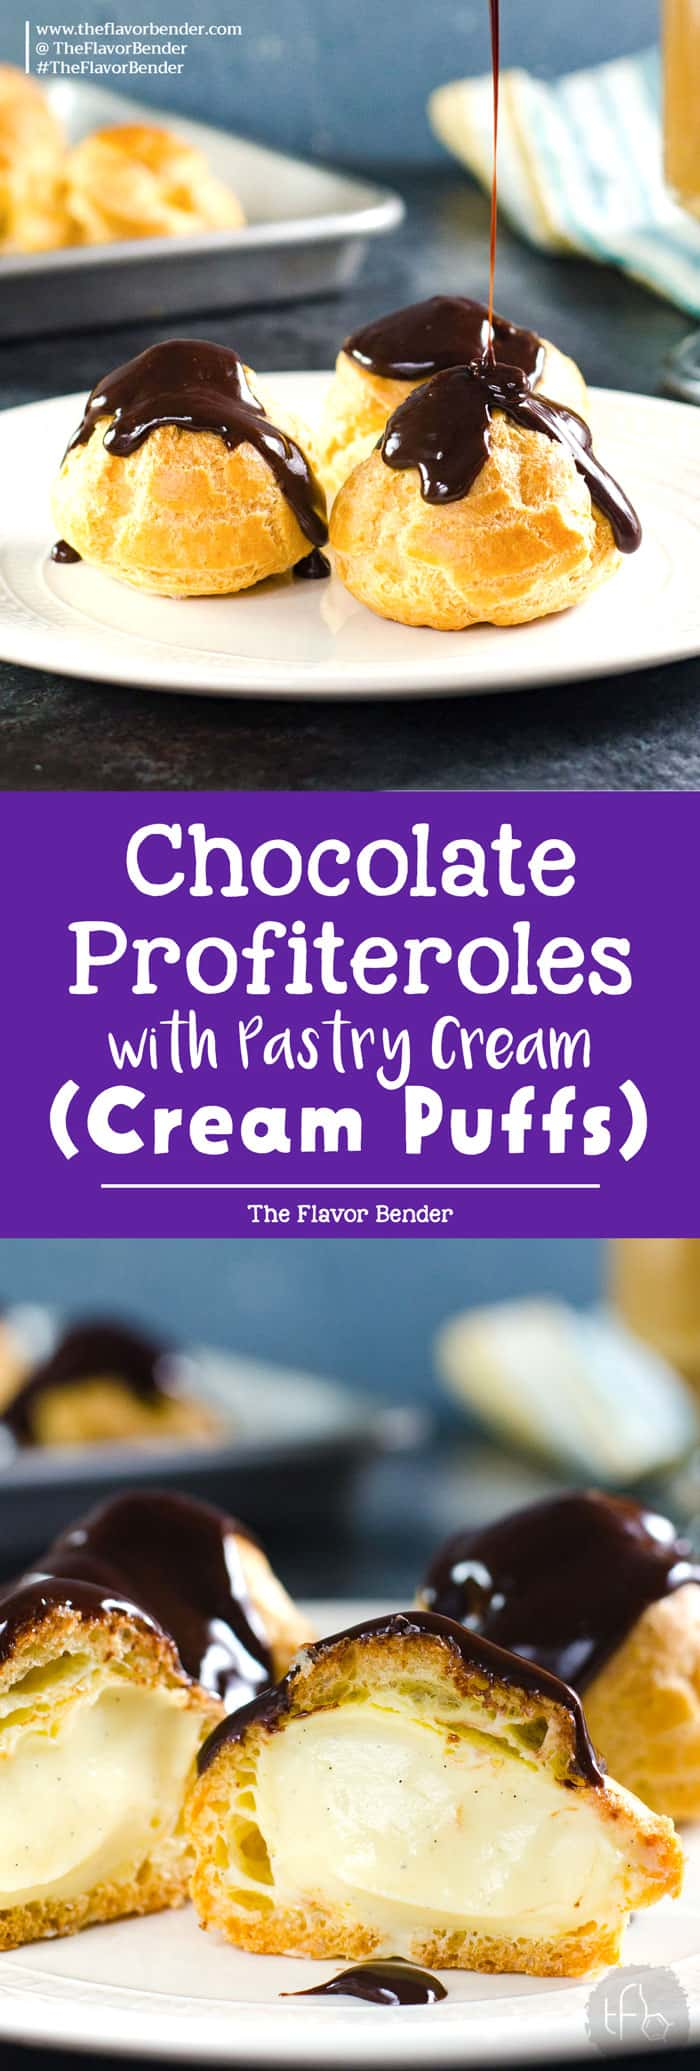 Chocolate Profiteroles with Pastry Cream (Cream Puffs) -rich, creamy custard filling inside light, airy, crispy, perfectly baked choux pastry shells, and then drizzled with a luscious chocolate sauce on top.